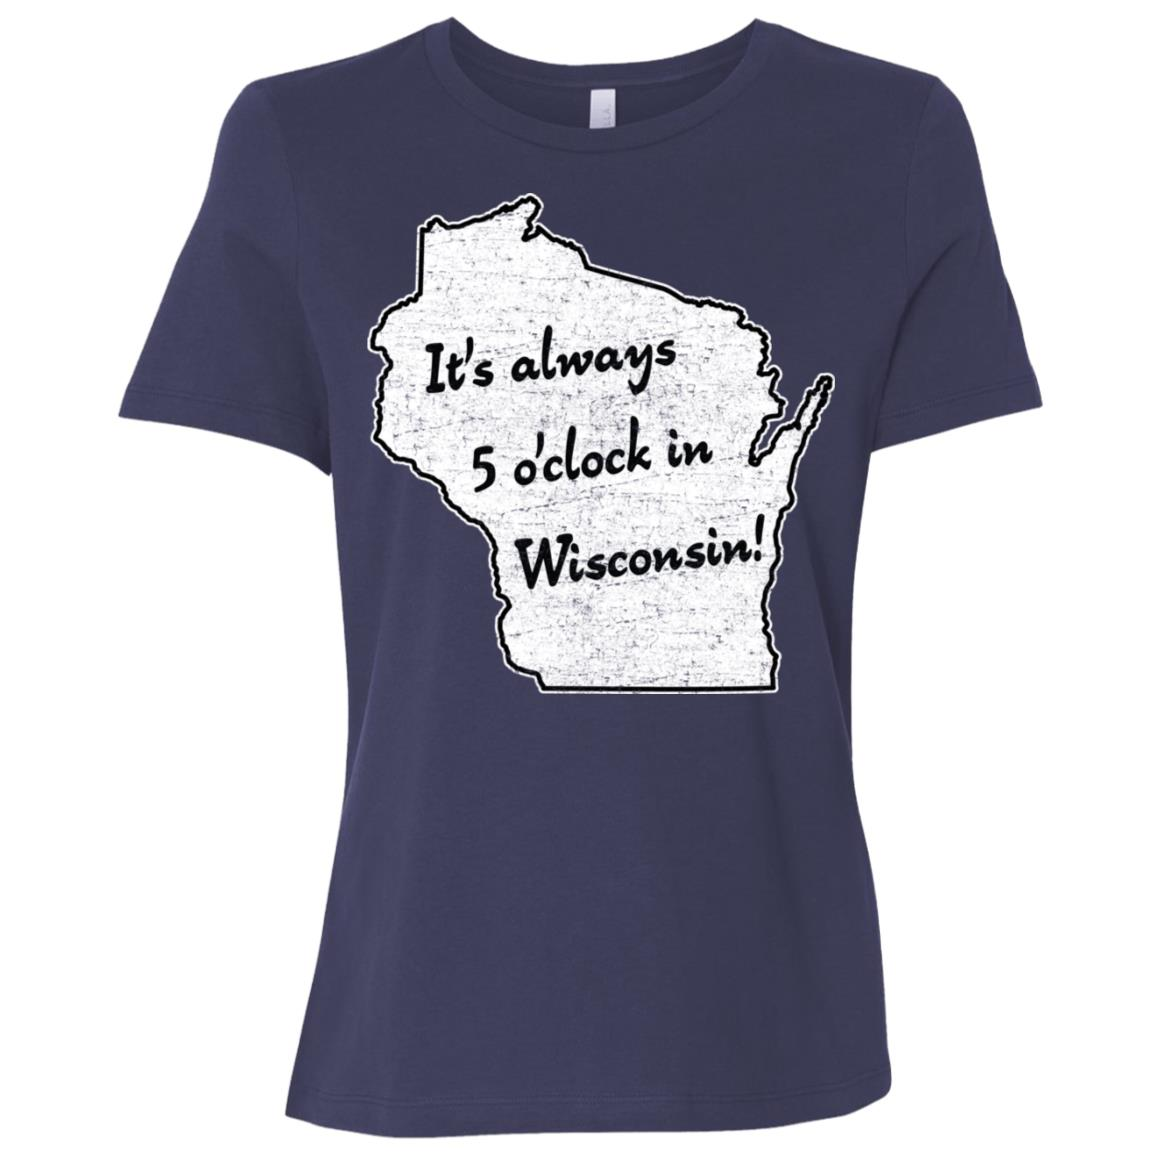 It's always 5 o'clock in Wisconsin sconnie wisco Women Short Sleeve T-Shirt